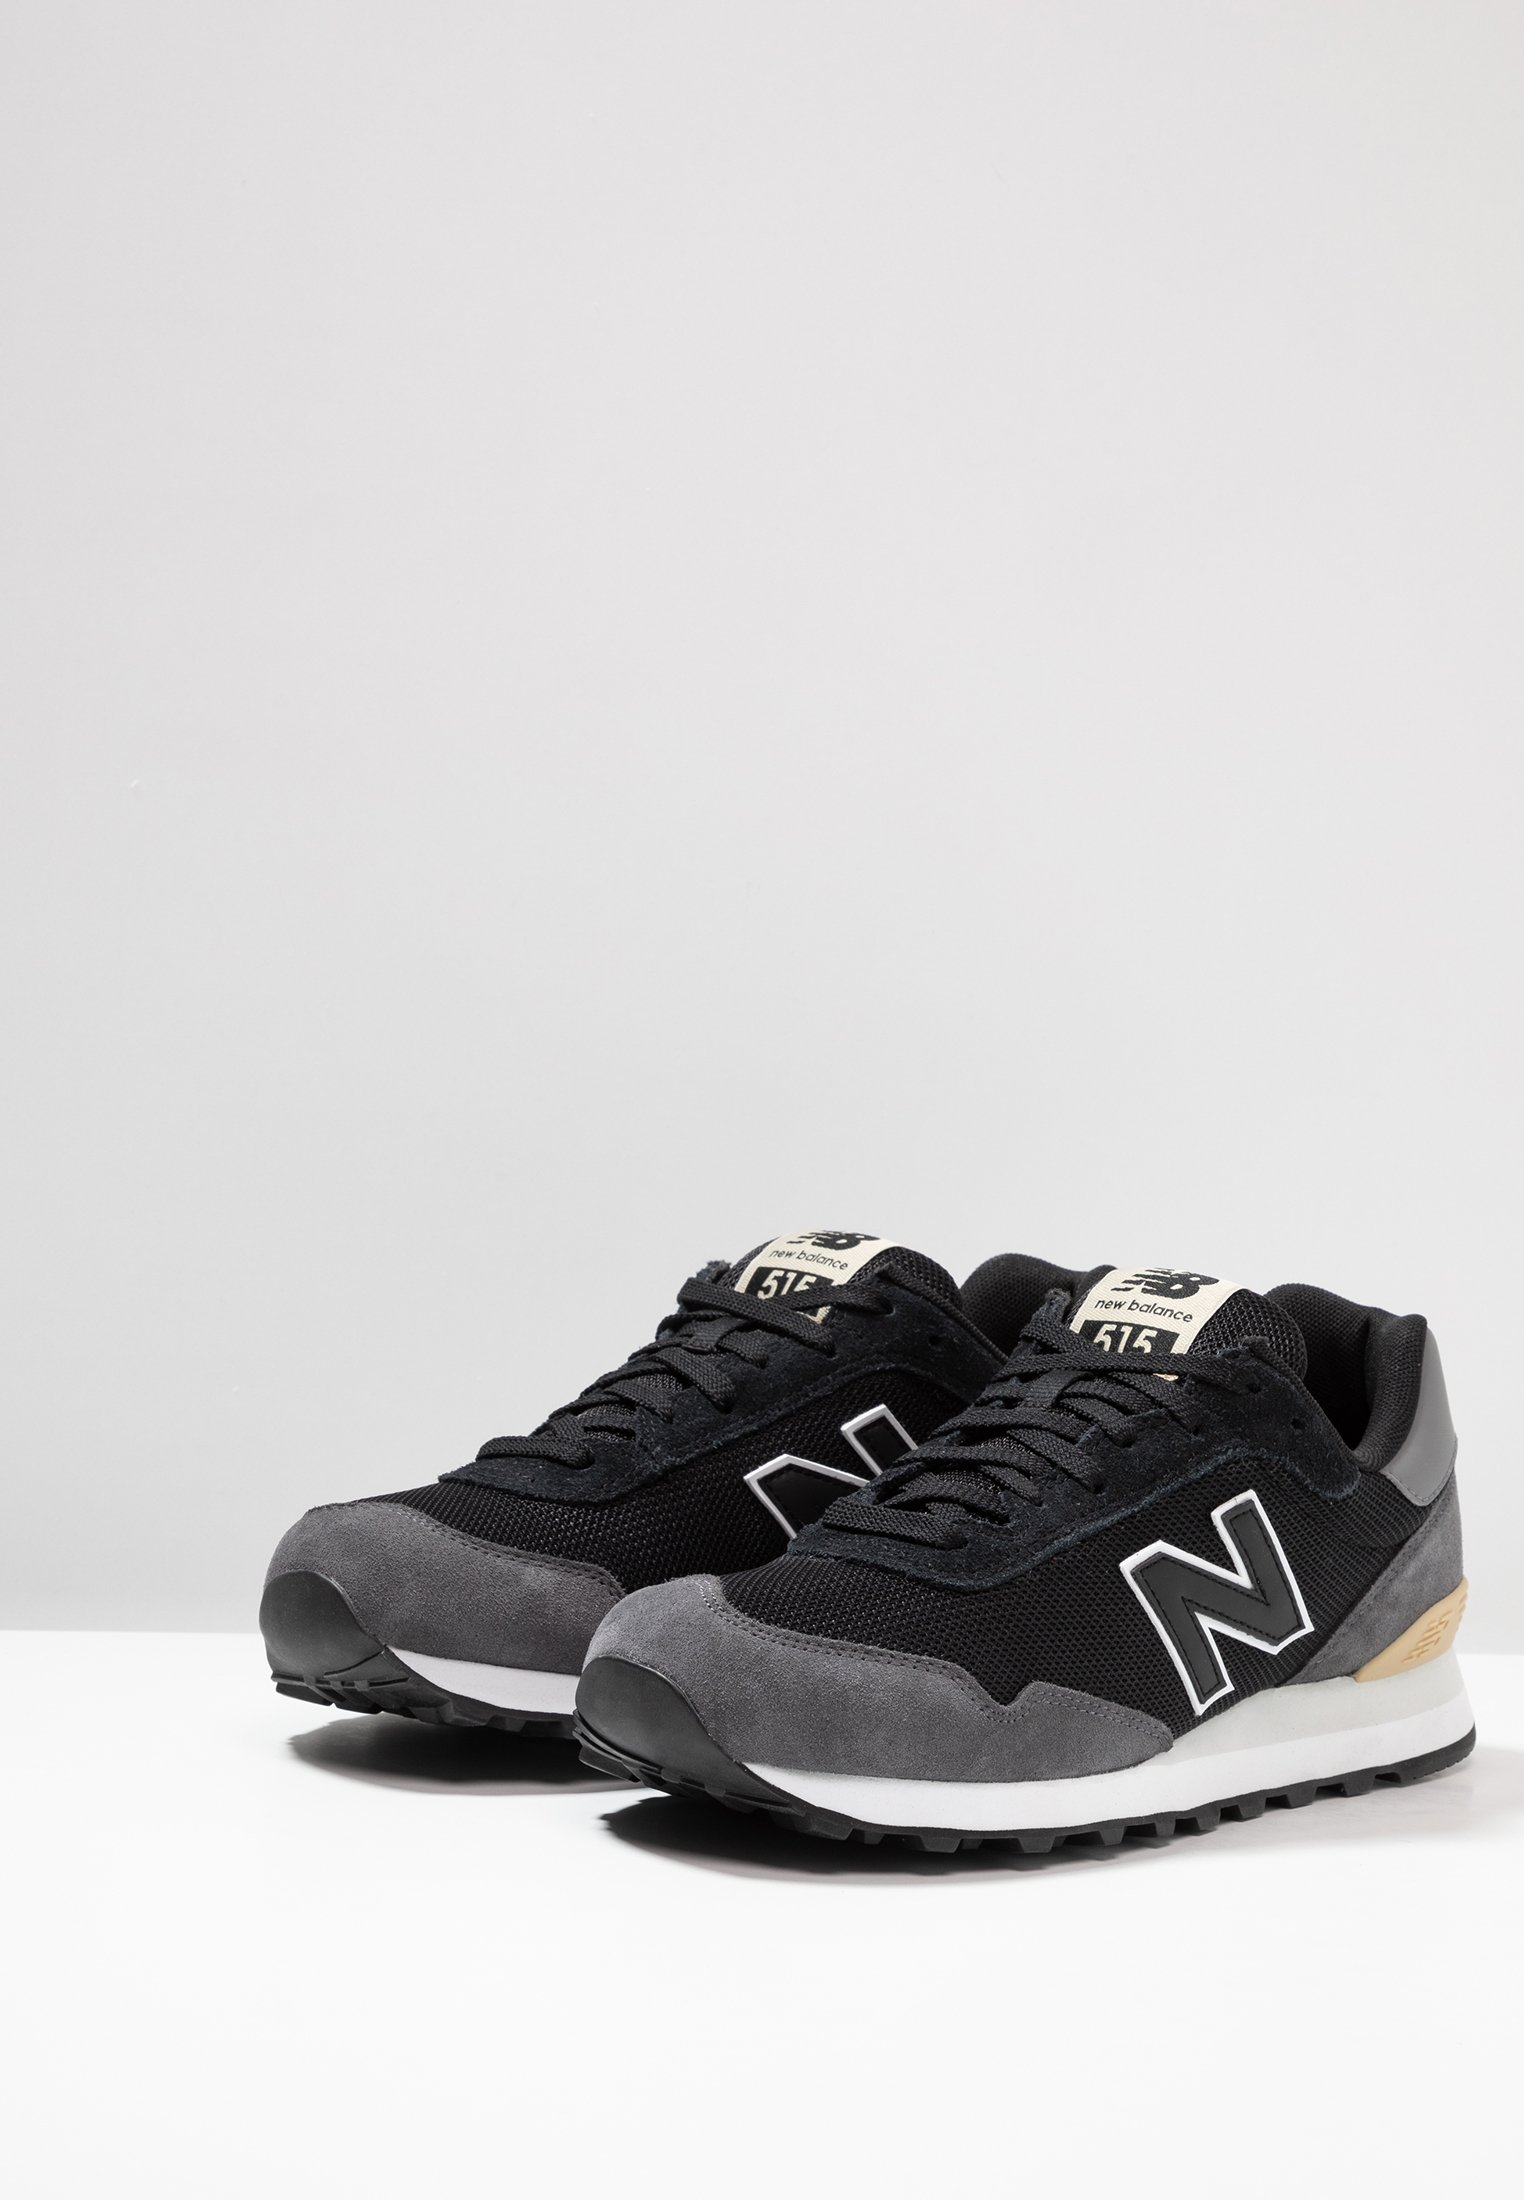 Basses New New Balance Black Ml515Baskets R54jq3AL